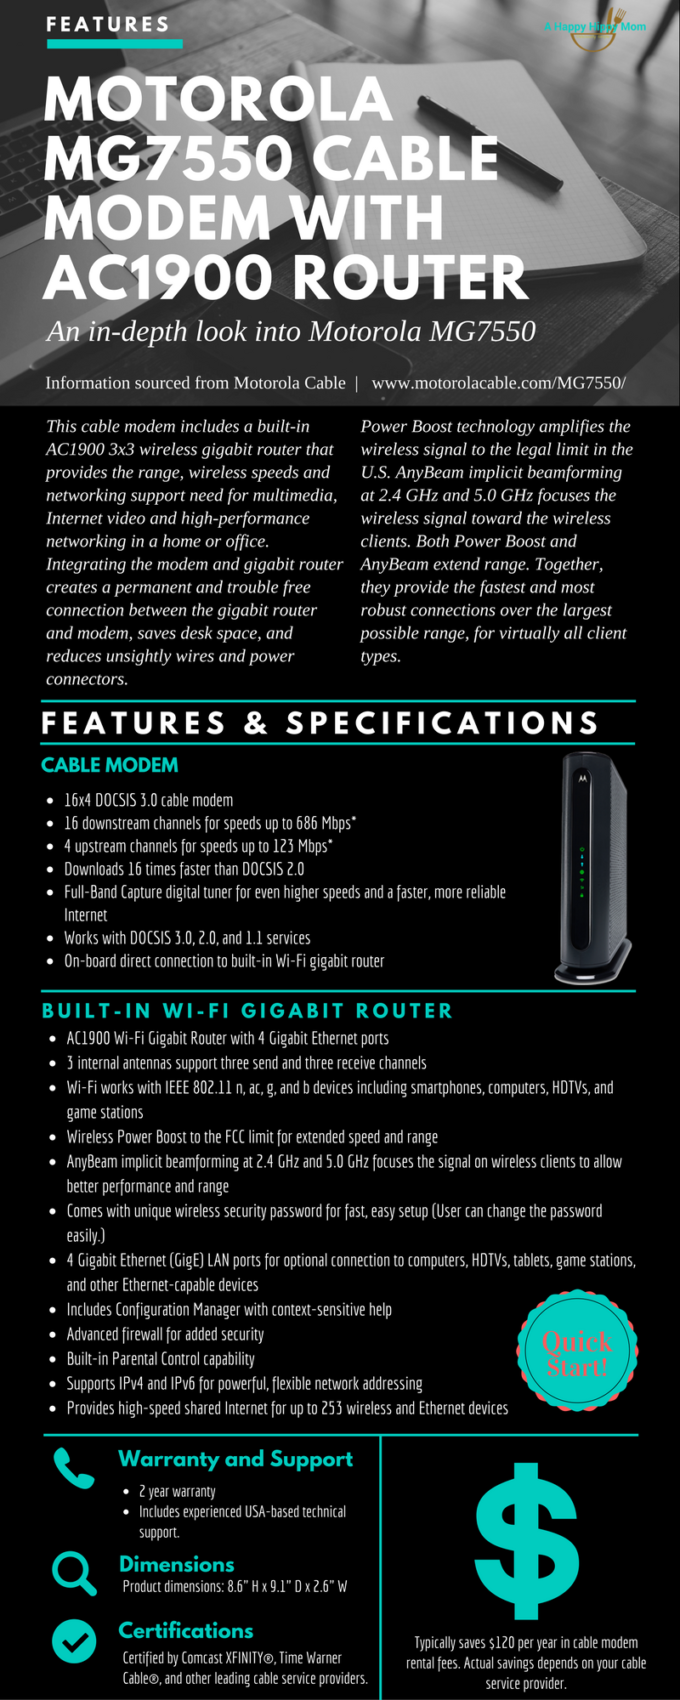 $120 Annual Savings On Cable Bill-Motorola MG7550 Cable Modem/Router